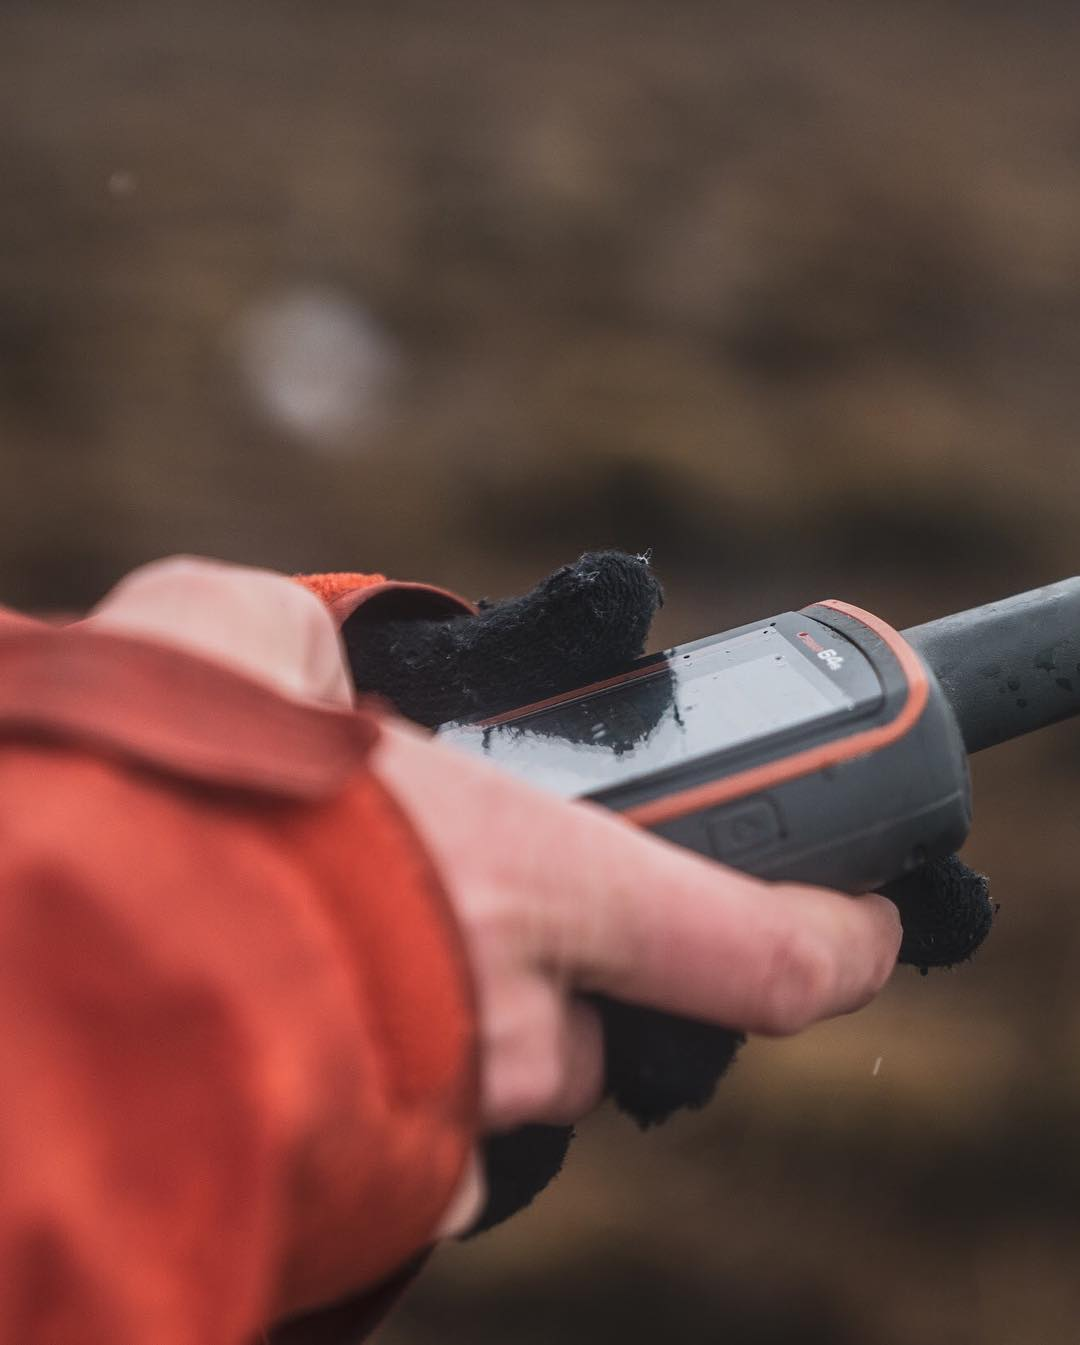 A hand with a bright orange coat sleeve holding a Walkie Talkie with dirt floor in the background.